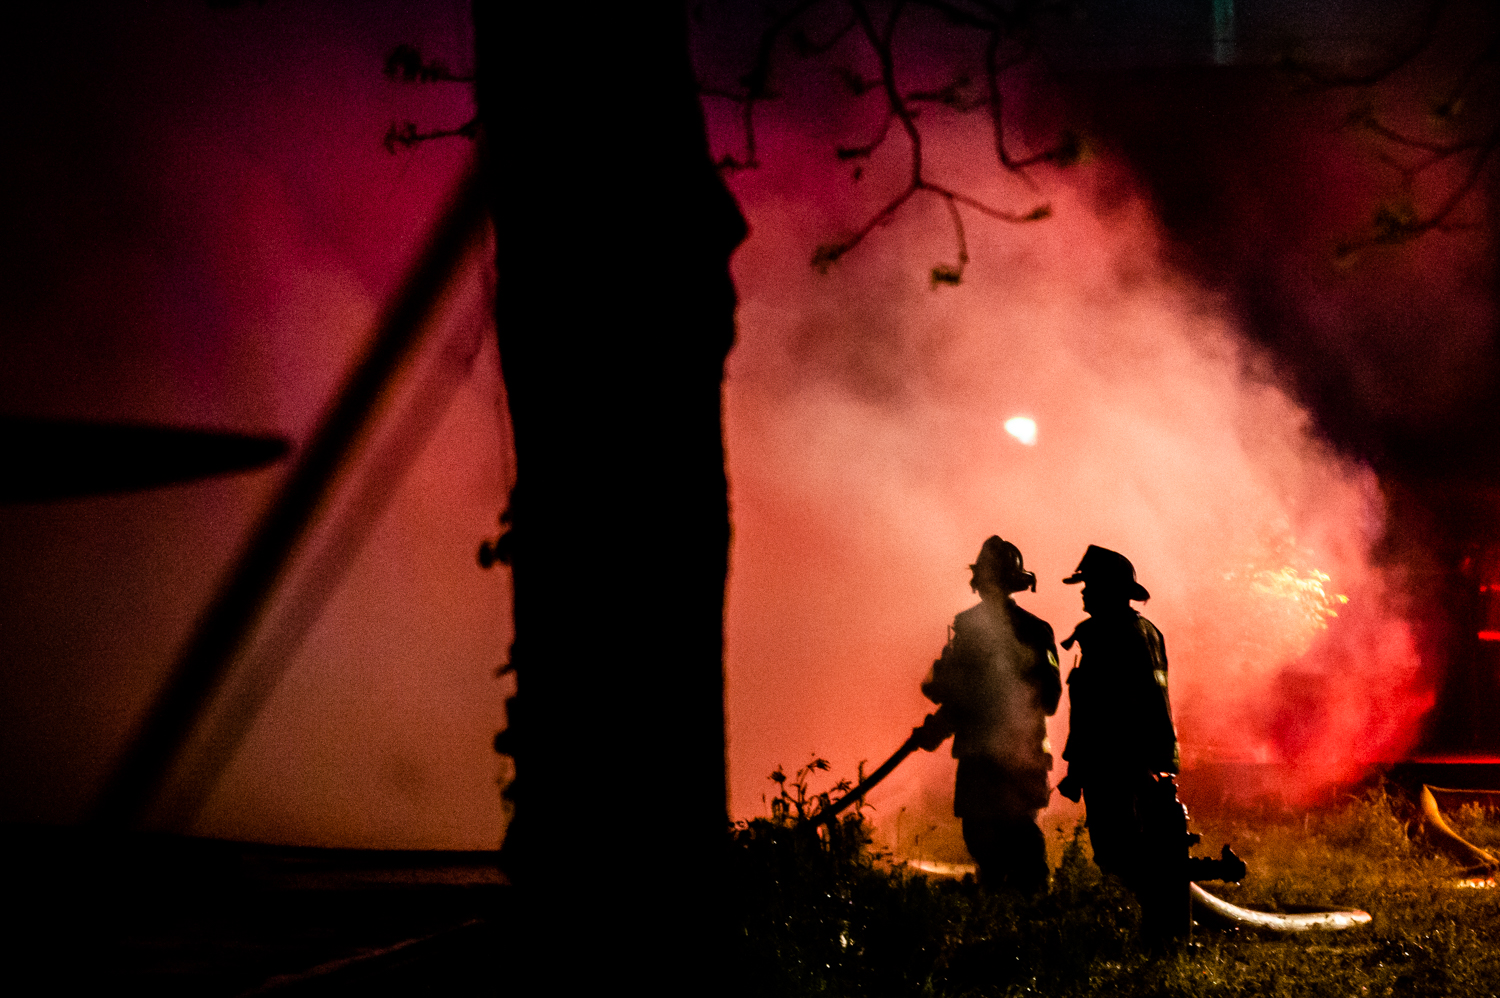 Firefighters are silhouetted in a cloud of smoke as they respond to the back side of Court Street Grill on April 22, 2019 in Moulton, Ala. The fire began in the Court Street Grill damaged at least two buildings housing businesses and offices on Moulton's historic courthouse square. The restaurant was fully engulfed in flames at 10:20 p.m. The fire began before 9 p.m.